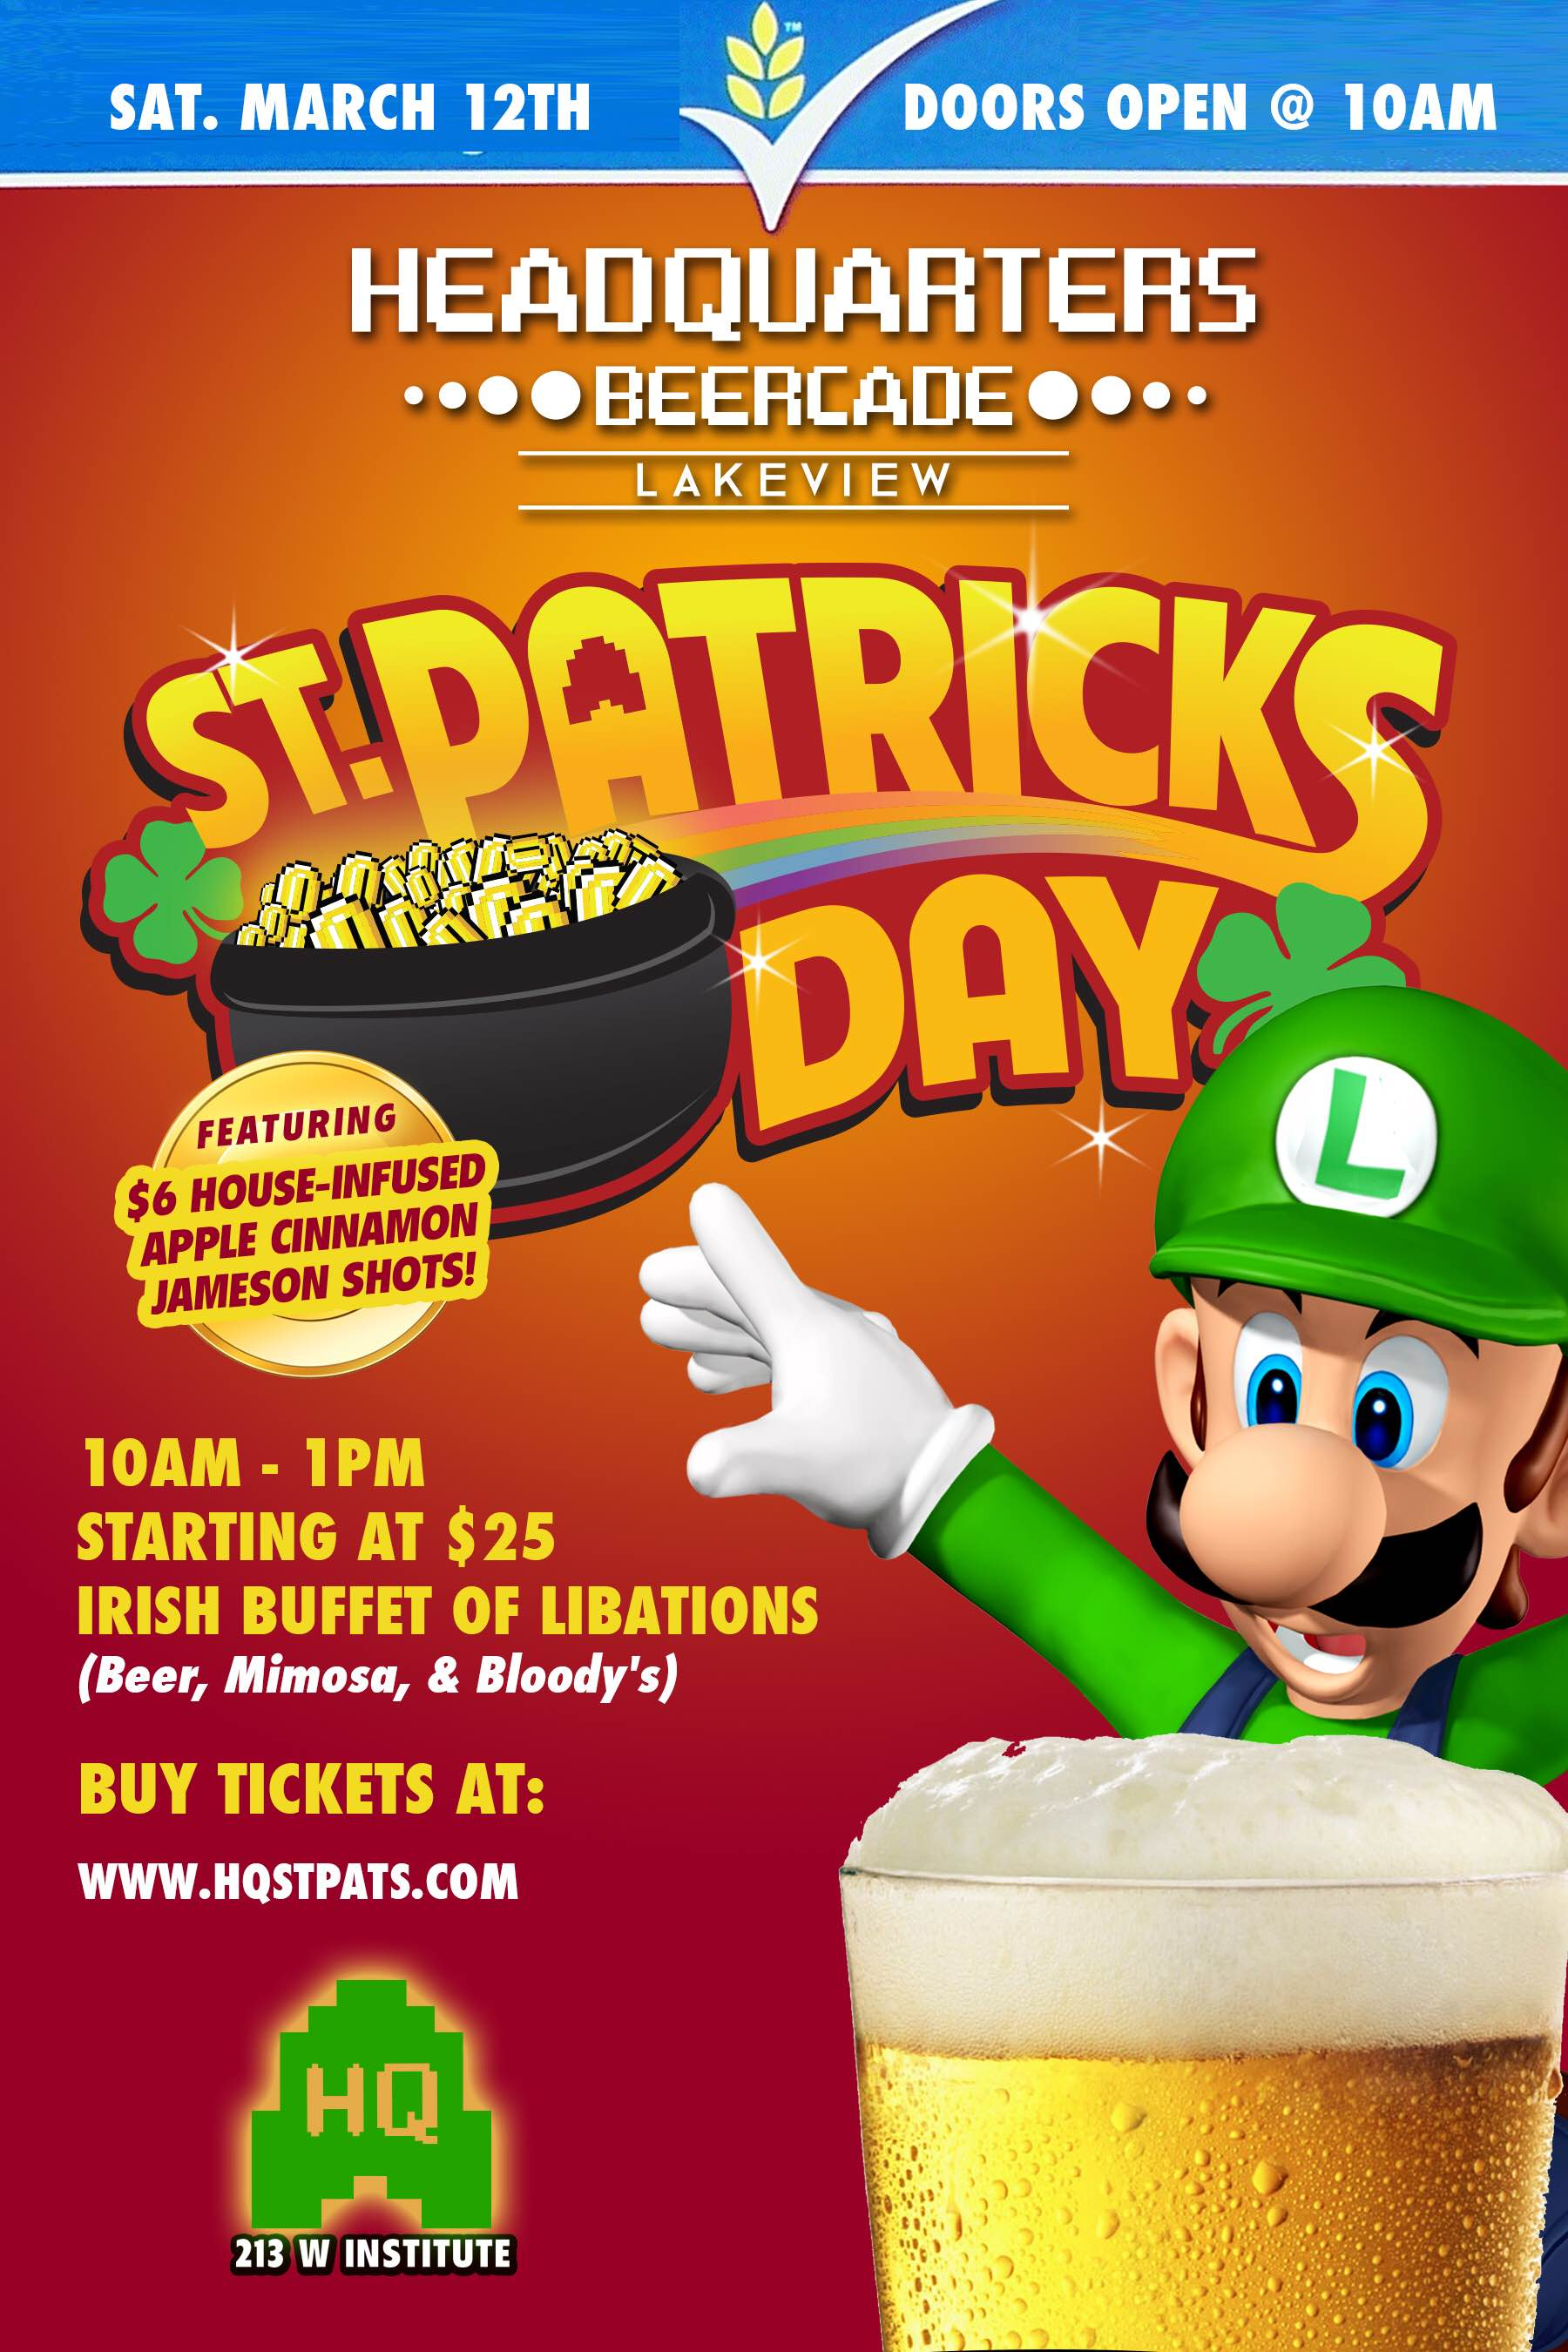 St patrick 39 s day at headquarters lakeview tickets sat for Doordash gift card